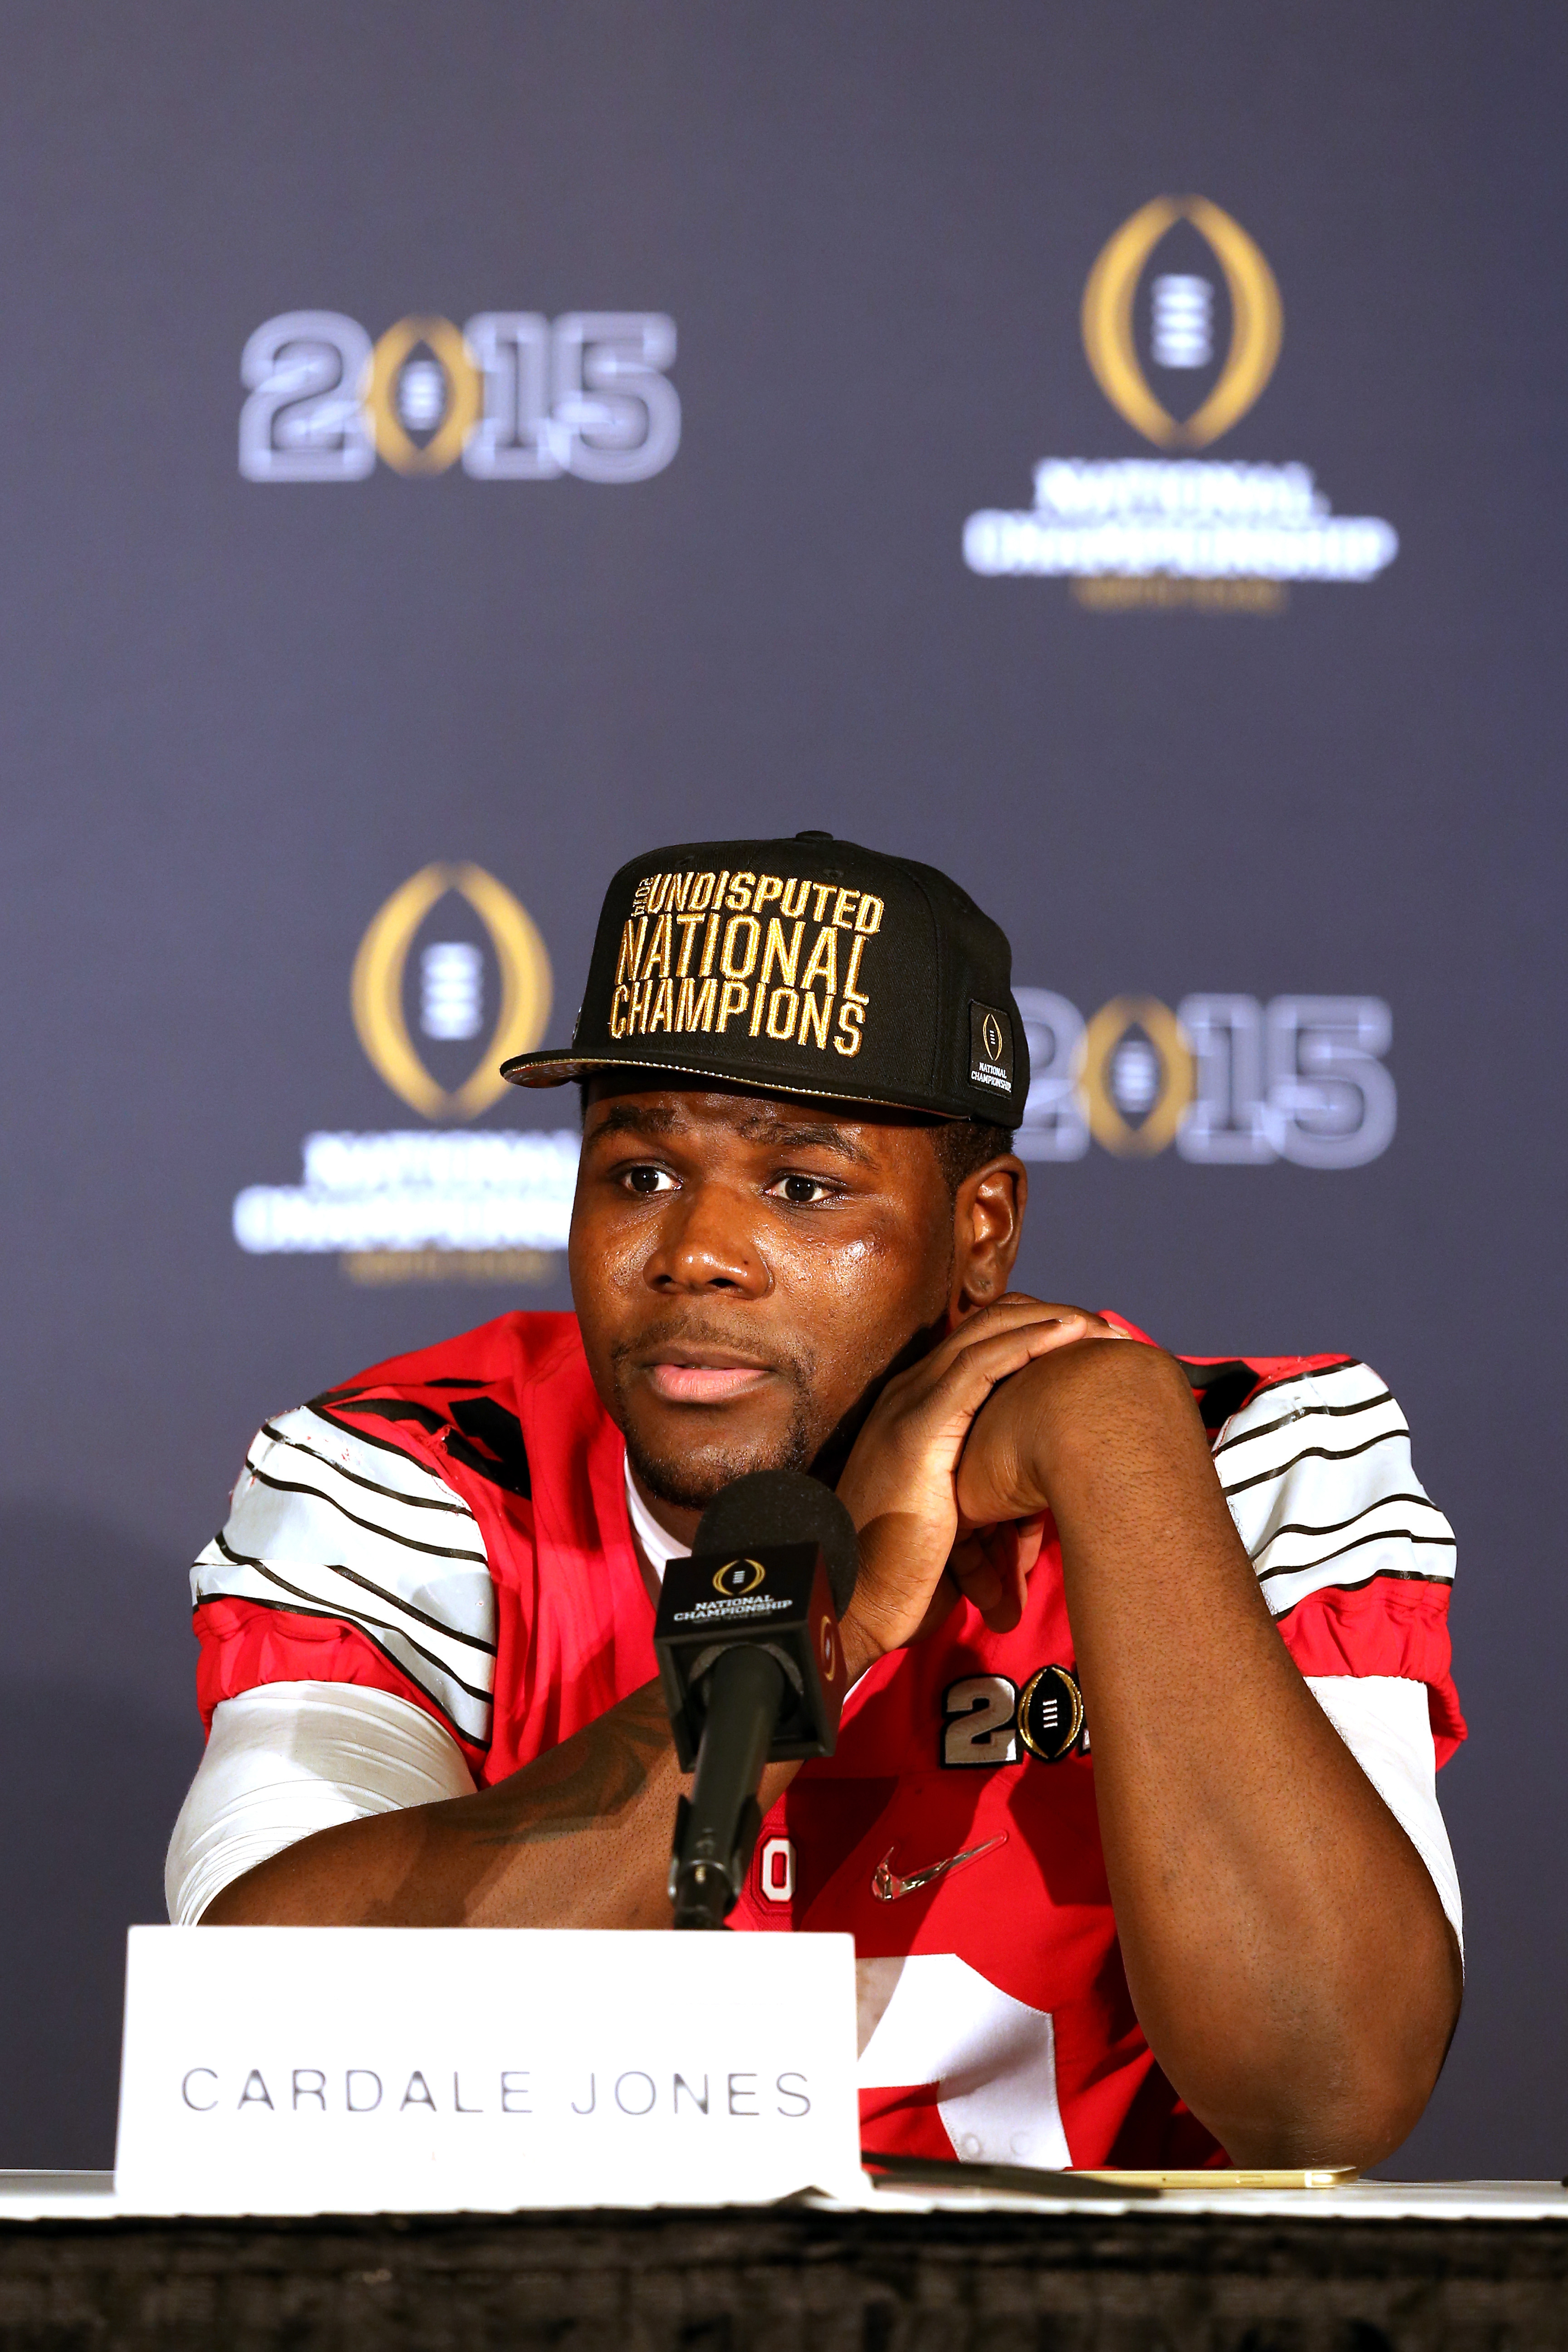 Quarterback Cardale Jones #12 of the Ohio State Buckeyes talks to the media after defeating the Oregon Ducks in the College Football Playoff National Championship Game at AT&T Stadium on January 12, 2015 in Arlington, Texas.  The Ohio State Buckeyes defeated the Oregon Ducks 42 to 20.